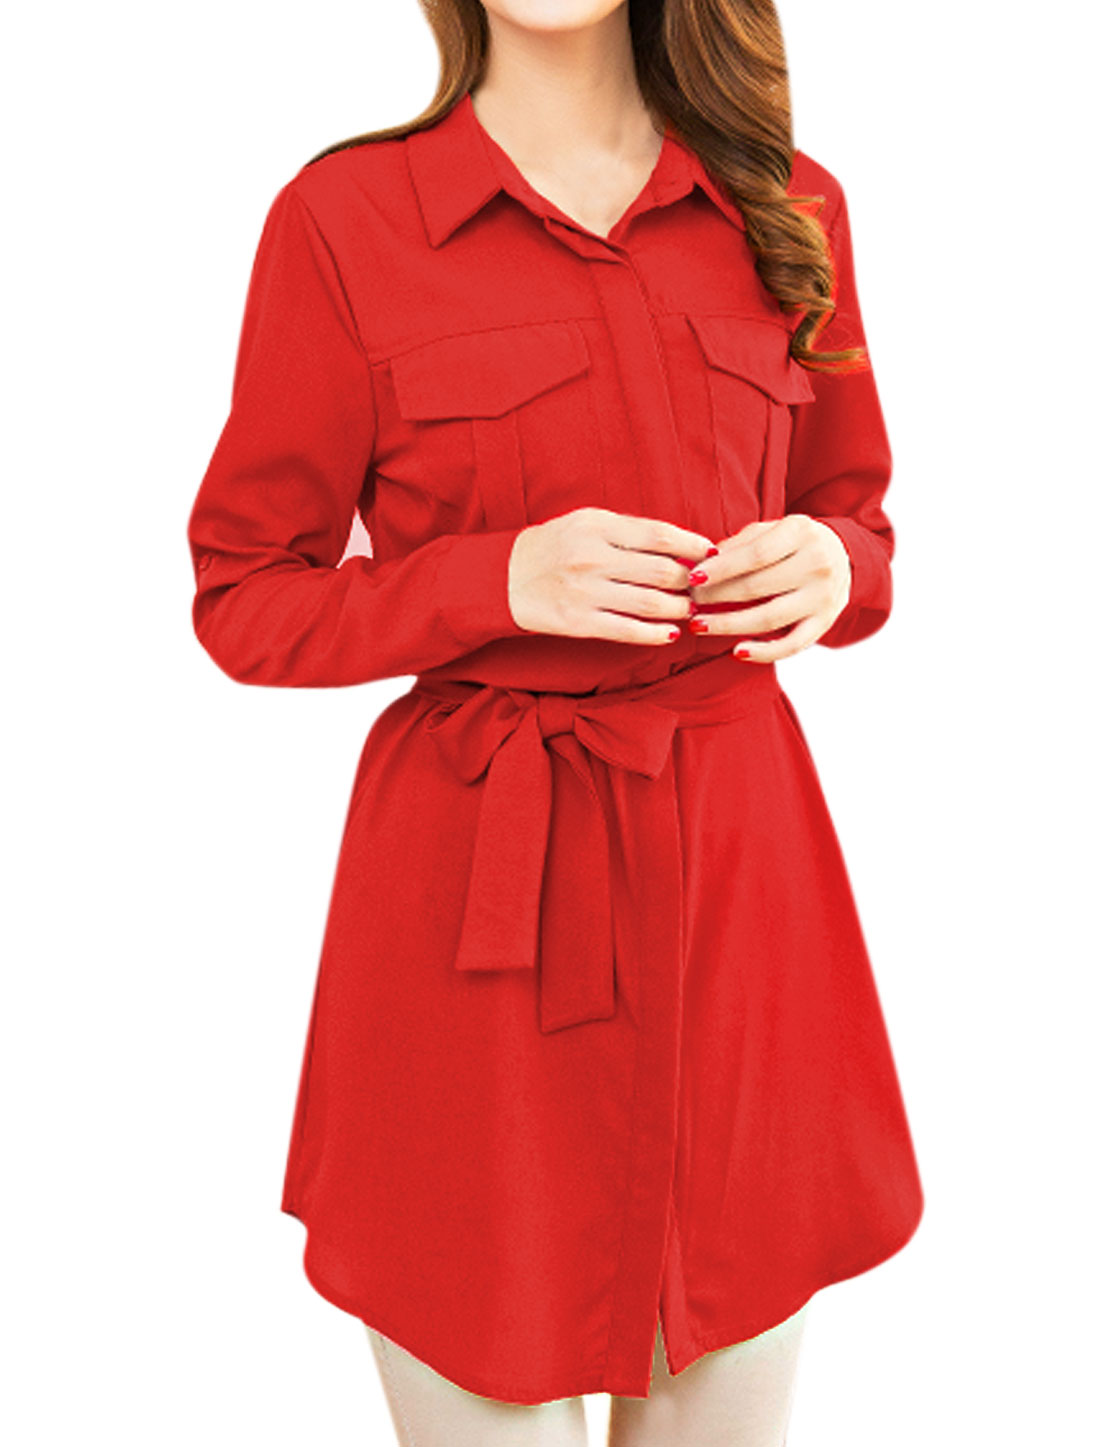 Woman Roll Up Sleeves Tunic Shirt Dress w Waist String Red M